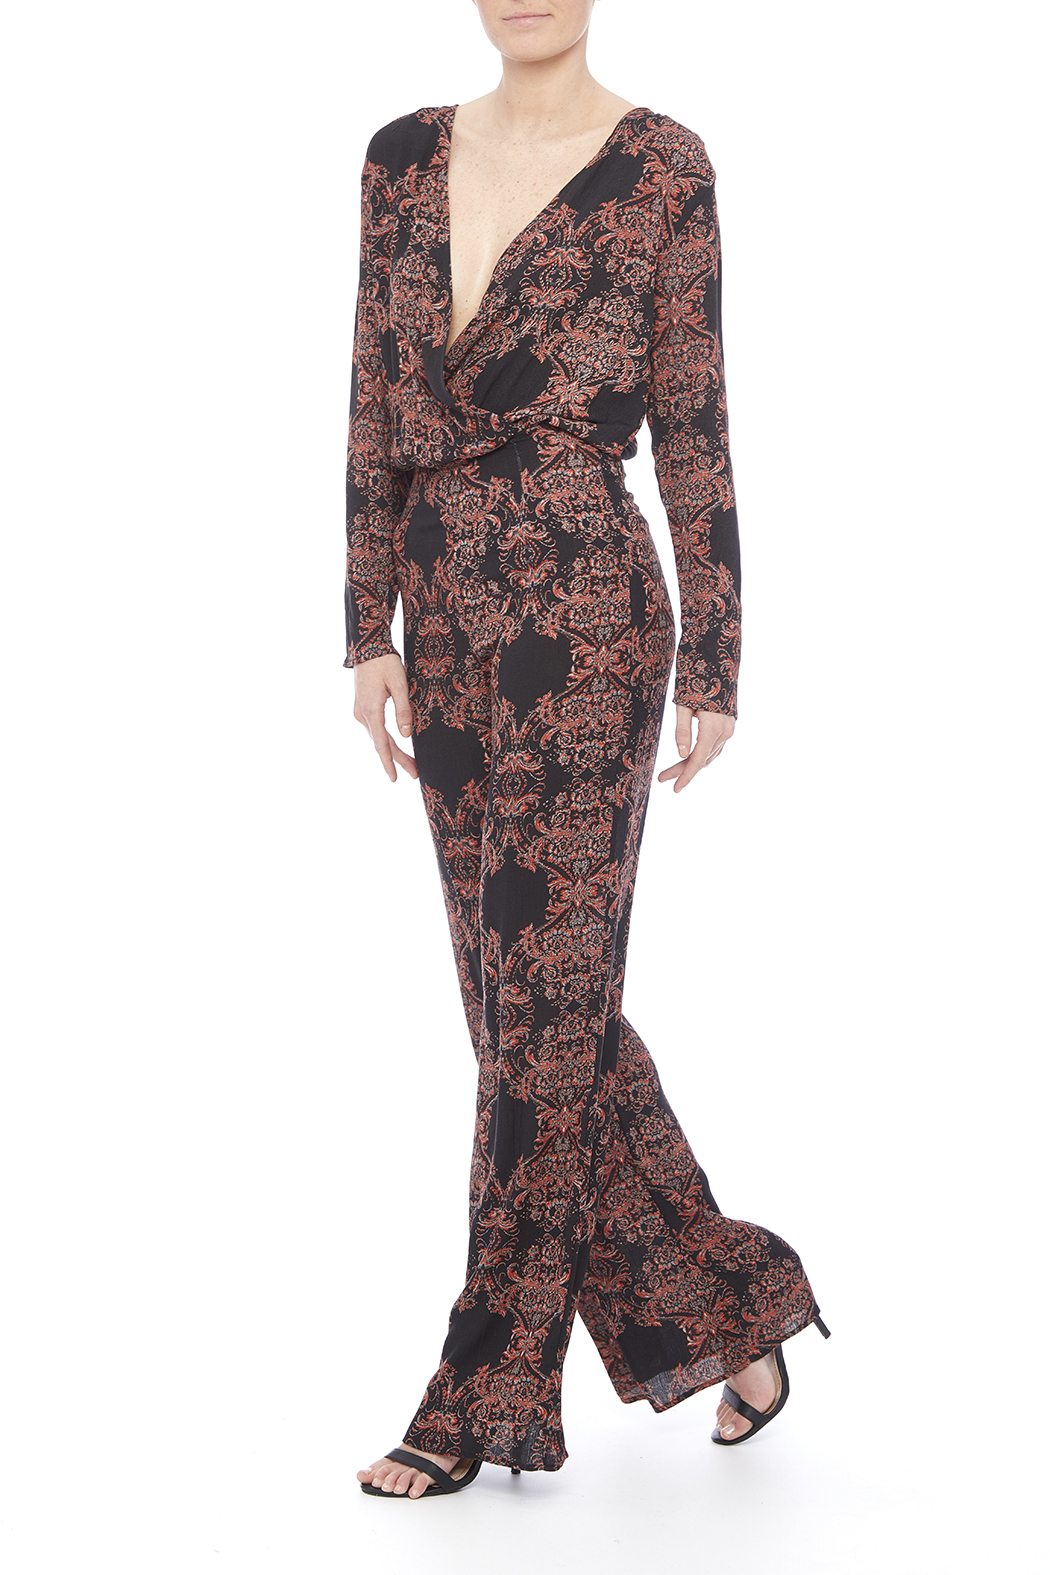 4c535ad1b56 Honey Punch Long Sleeve Patterned Jumpsuit from Los Angeles by ...